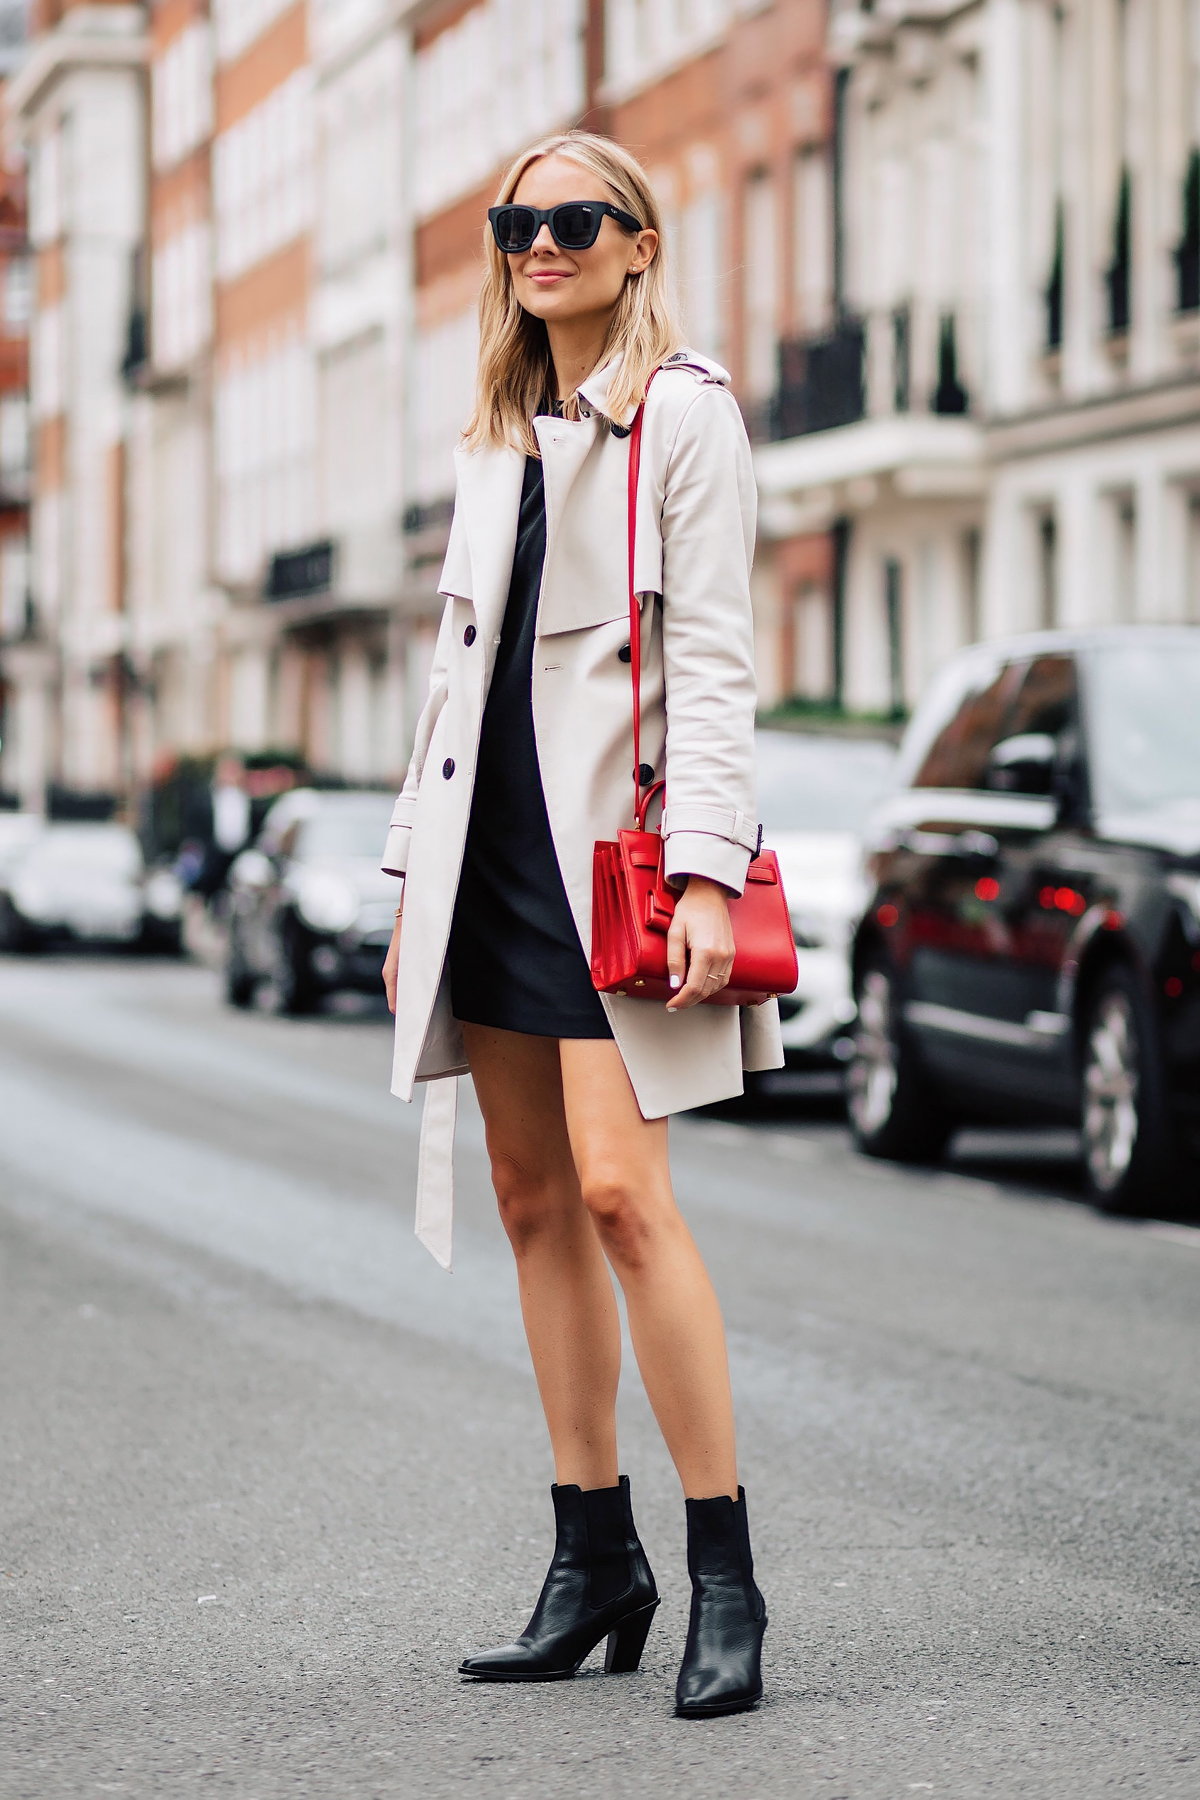 Blonde Woman Wearing Club Monaco Trench Coat Black Dress Black Booties Outfit Red YSL Sac De Jour Handbag Fashion Jackson San Diego Fashion Blogger London Street Style